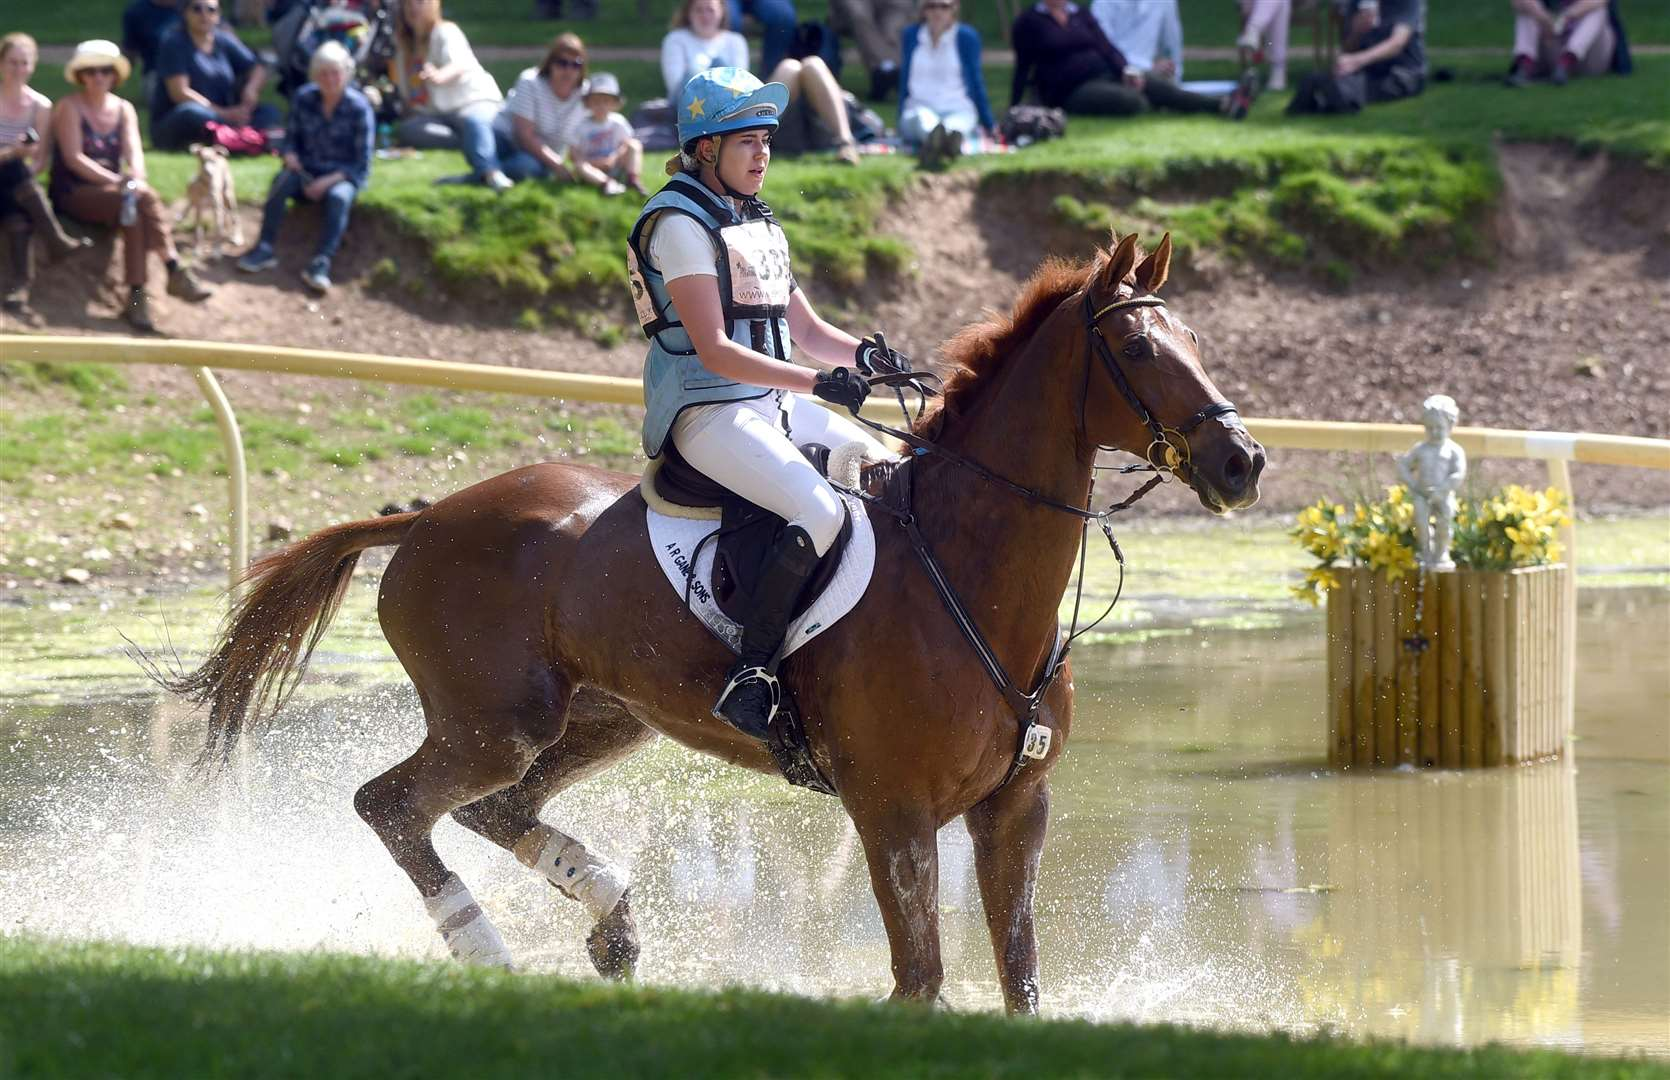 Houghton Horse Trials..Toots Bartlett riding Candyman Leanorth... (11187895)